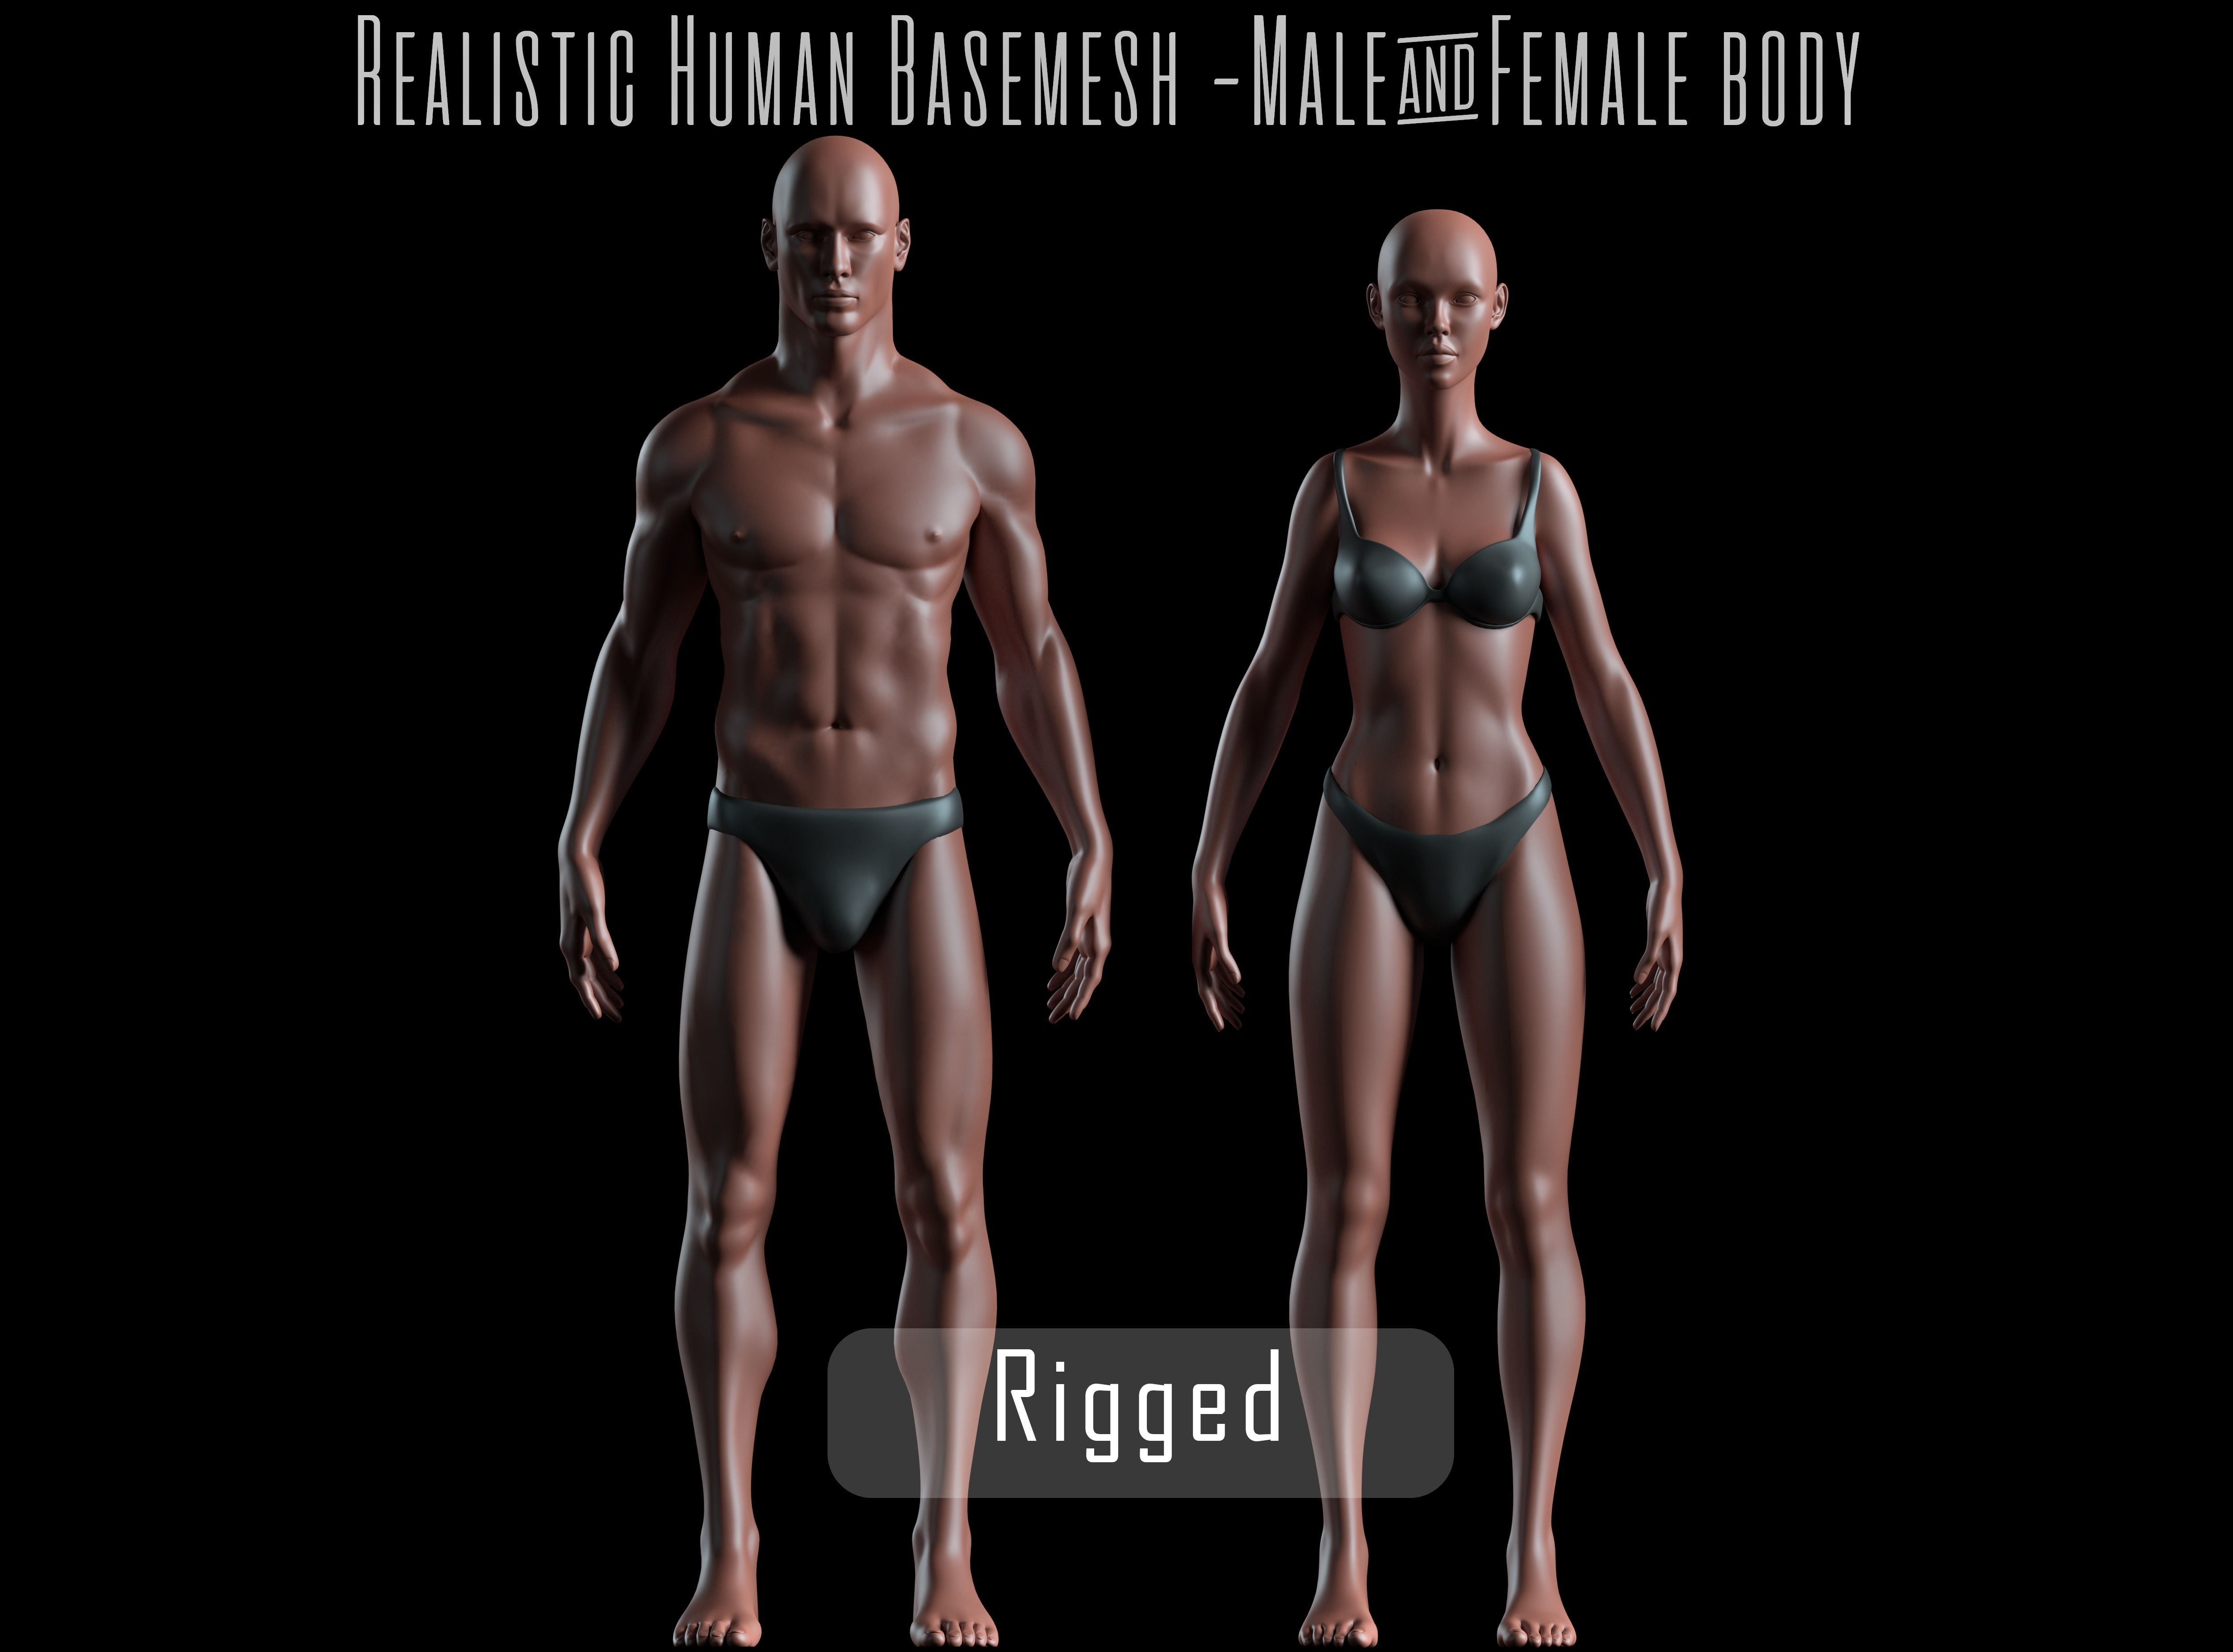 Realistic Human Basemesh - Rigged - UVMapped - Man - Woman Body